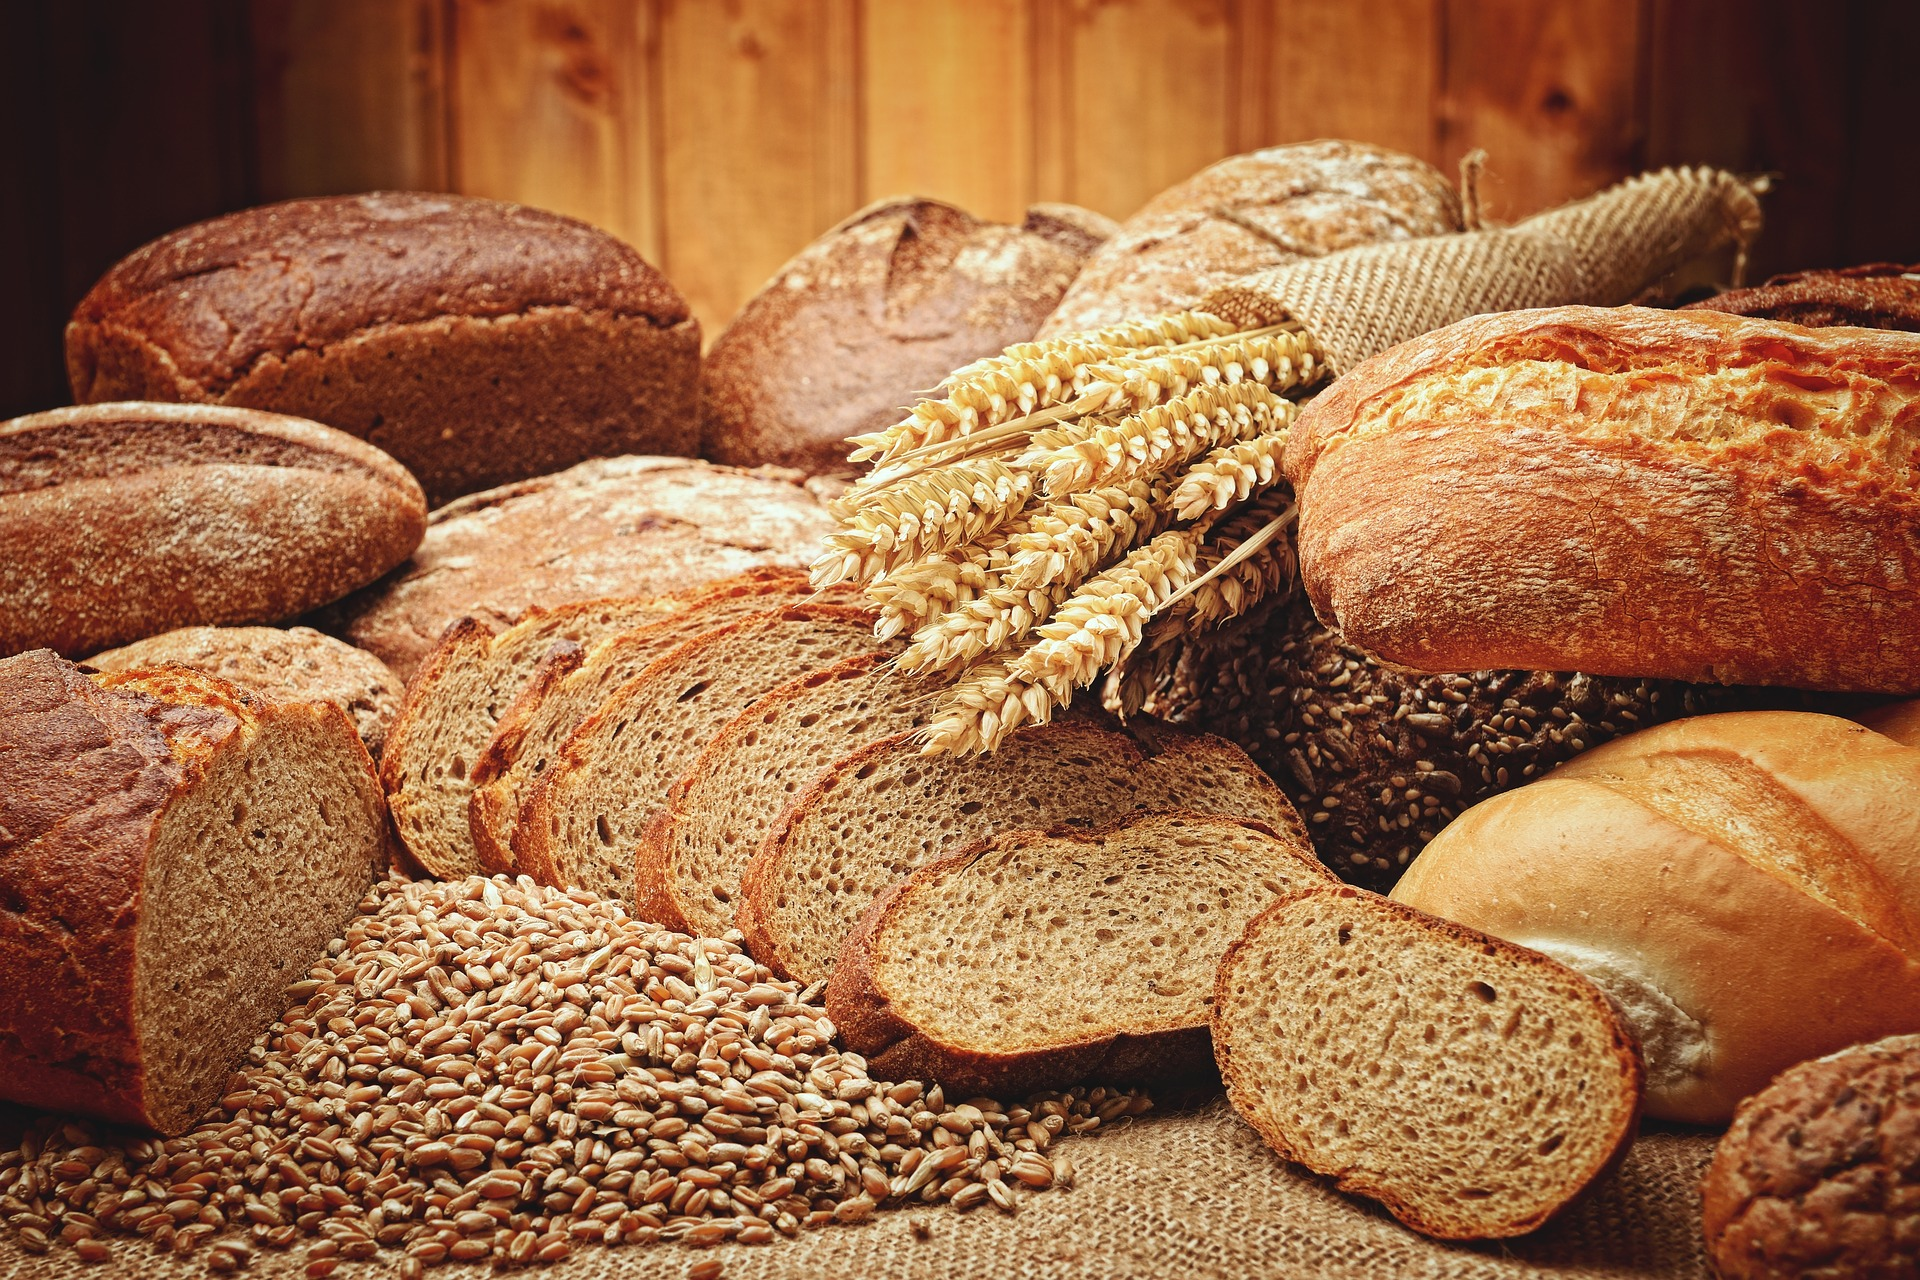 Carb Confusion Part 1: The Role of Carbohydrate in Pet Foods